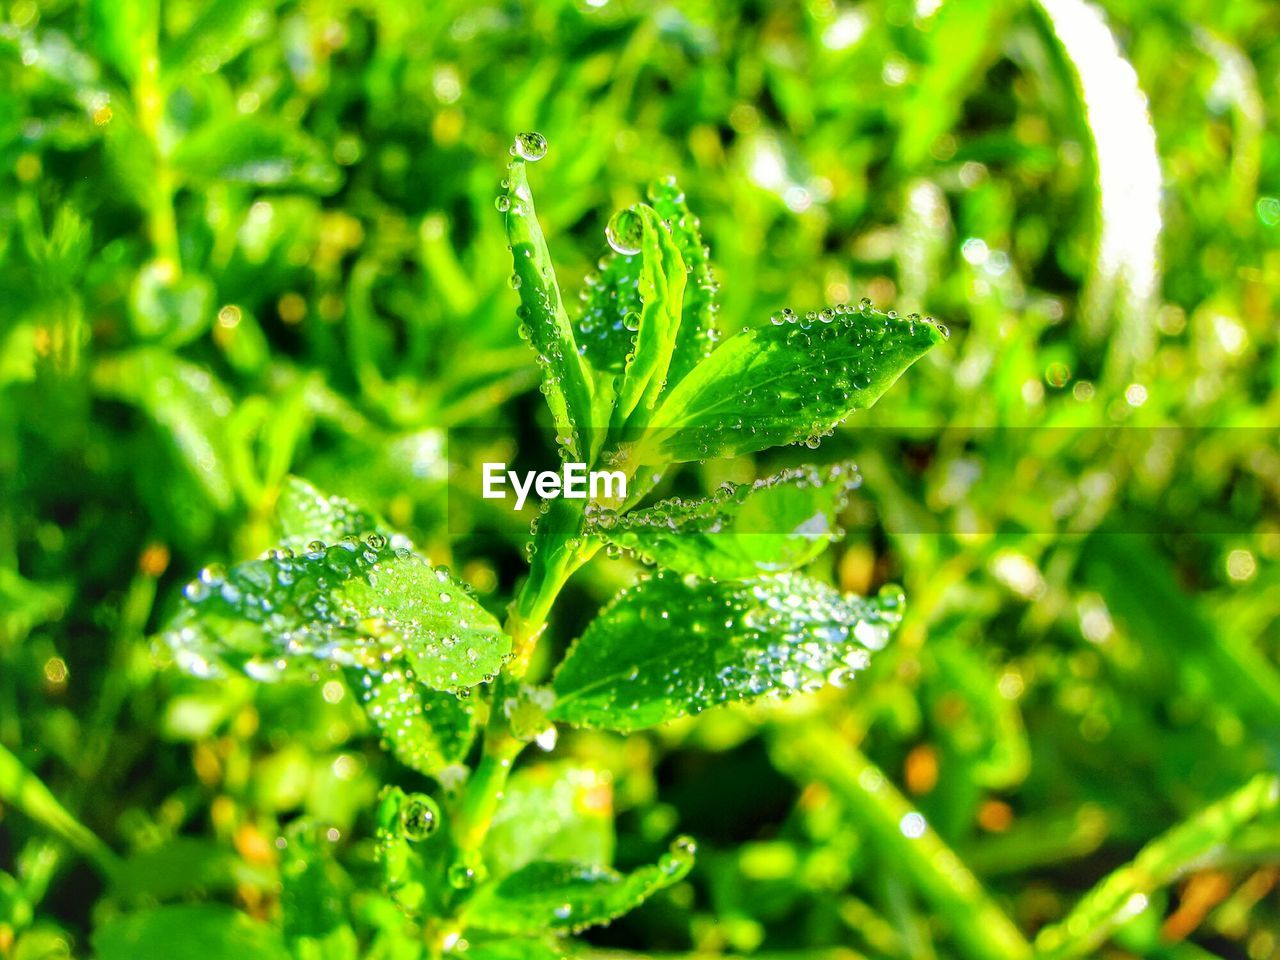 green color, growth, plant, water, drop, leaf, beauty in nature, close-up, plant part, no people, day, wet, nature, freshness, selective focus, outdoors, focus on foreground, raindrop, tranquility, rain, dew, purity, leaves